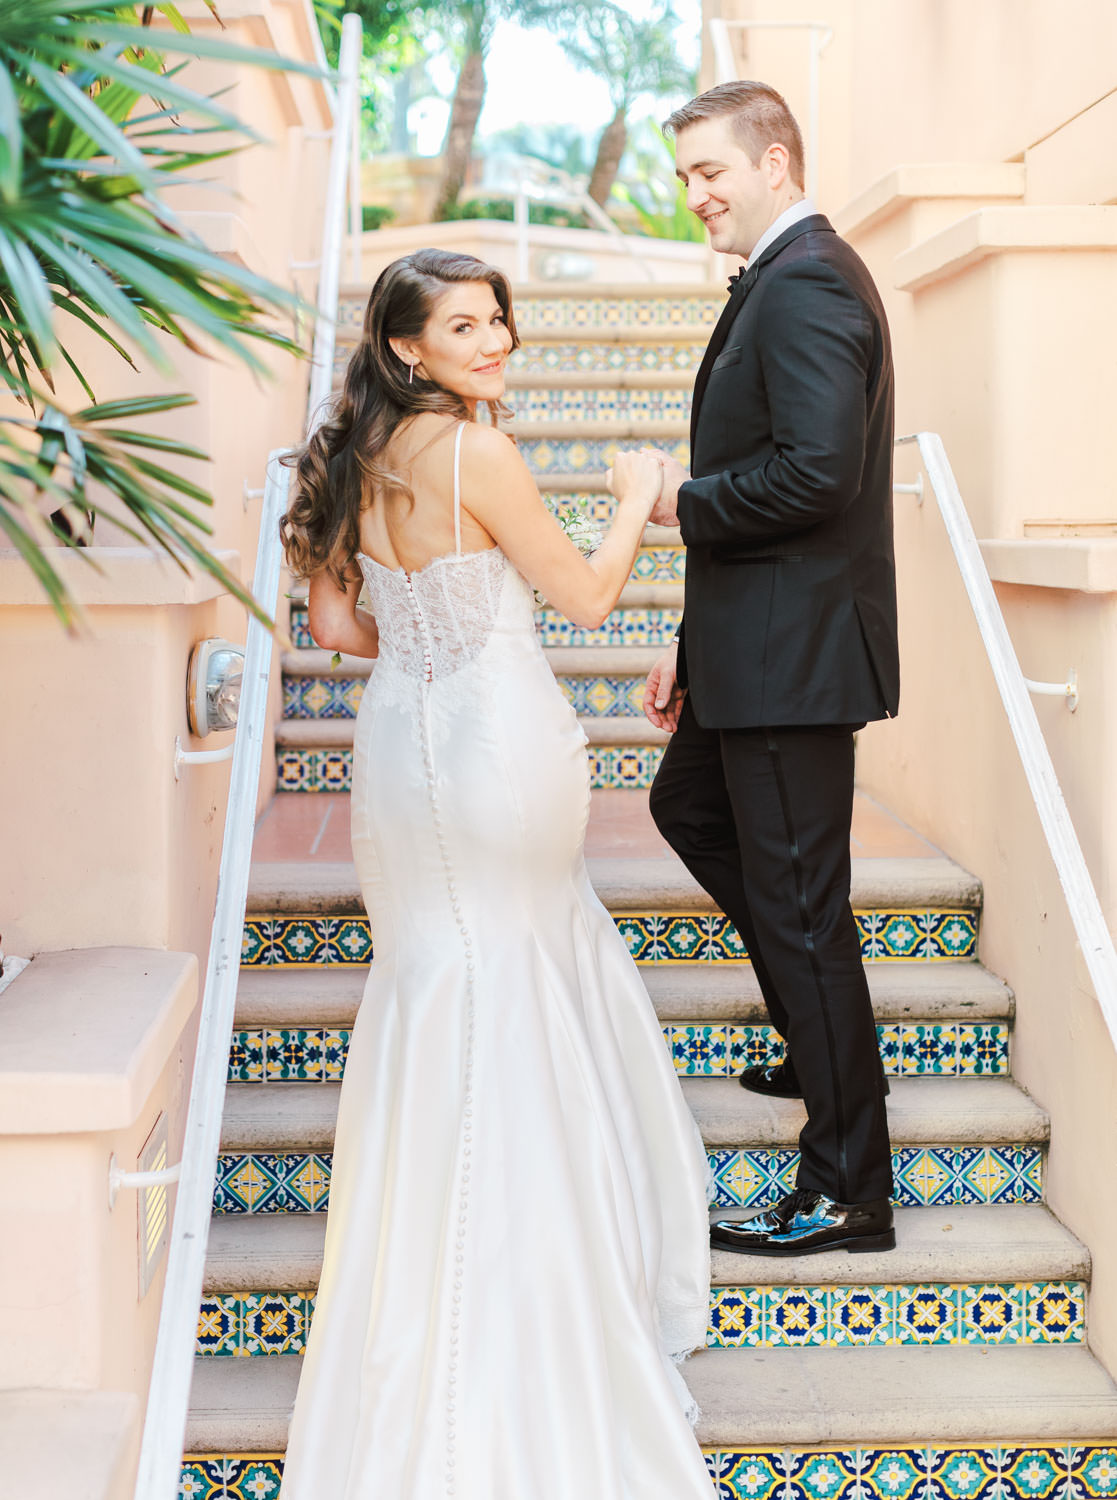 Bride walking with groom up stairs that have mosaic color tile in between each step, Intimate Wedding at La Valencia Hotel in La Jolla by Cavin Elizabeth Photography